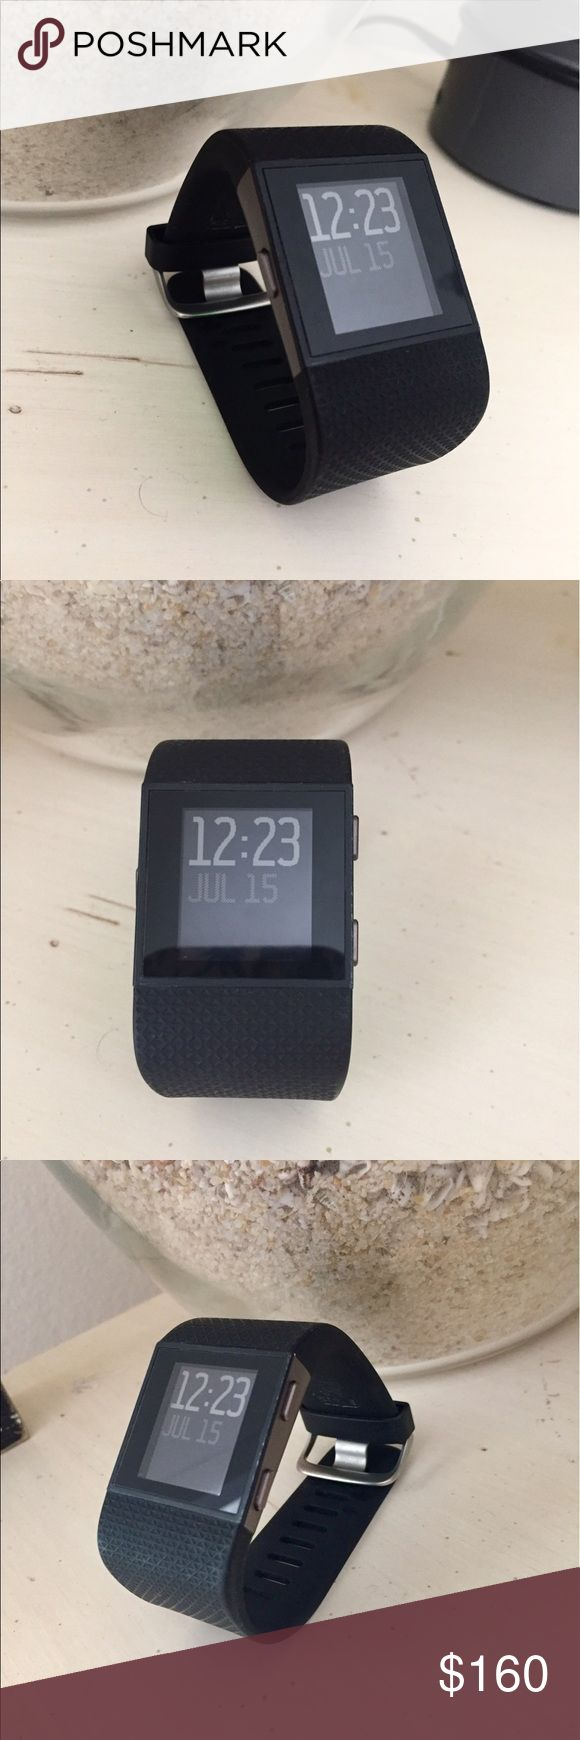 Fitbit Surge! Size small black Fitbit surge. Comes with original box and charger. Great condition, VERY minor white scratch on side edge as seen in photo. Nothing wrong with it, just looking to get a different smaller watch. GPs tracking, heart rate, activity tracker, Smart-Track multi sport, sleep tracker, auto sleep and alarms, notifications for call and text, wireless syncing ETC! fitbit Accessories Watches